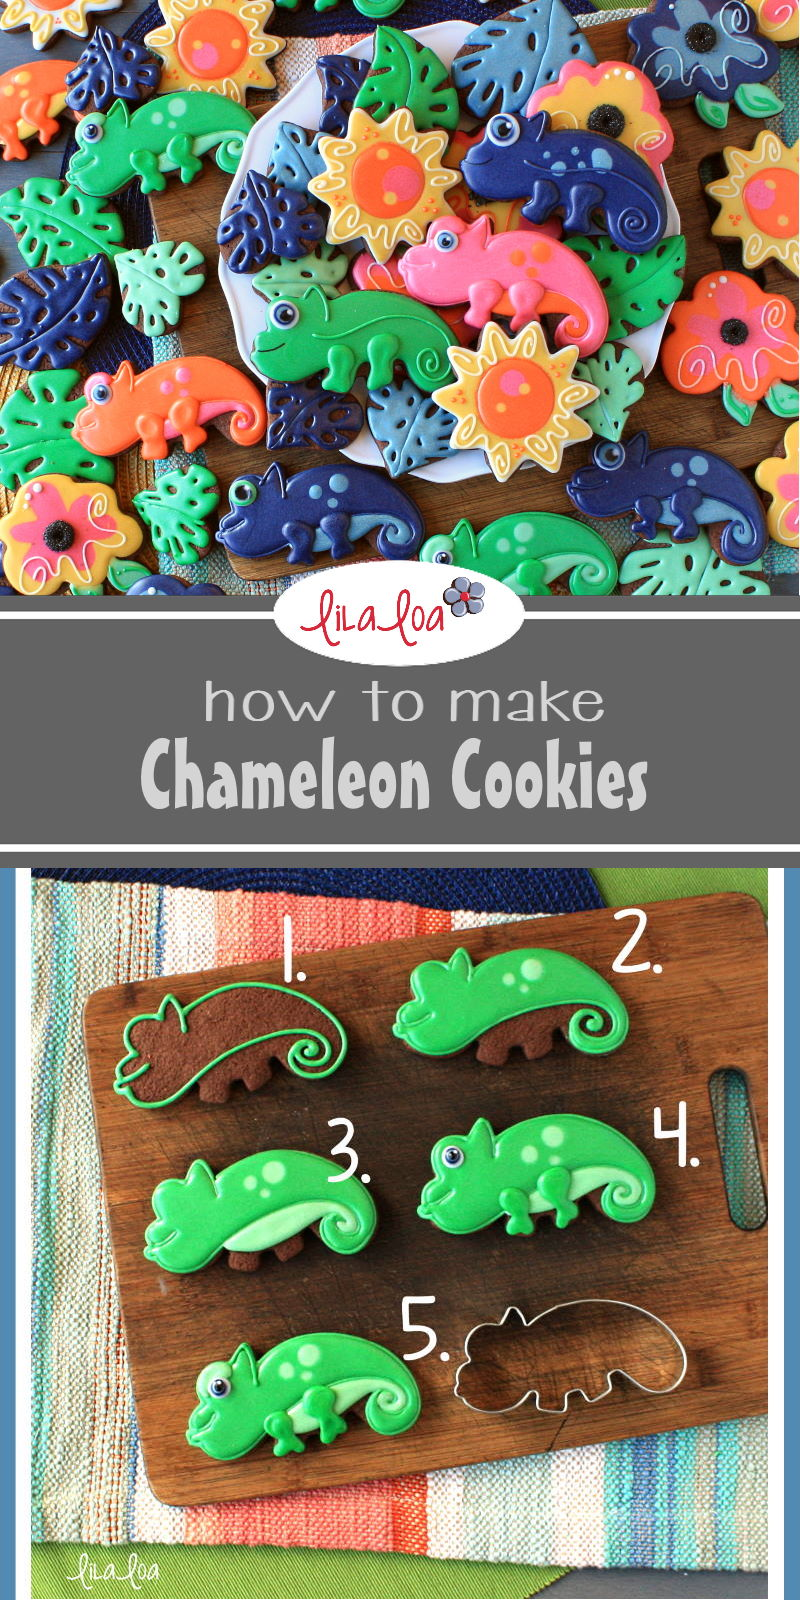 Chameleon sugar cookie decorating tutorial - how to make easy chameleon cookies!